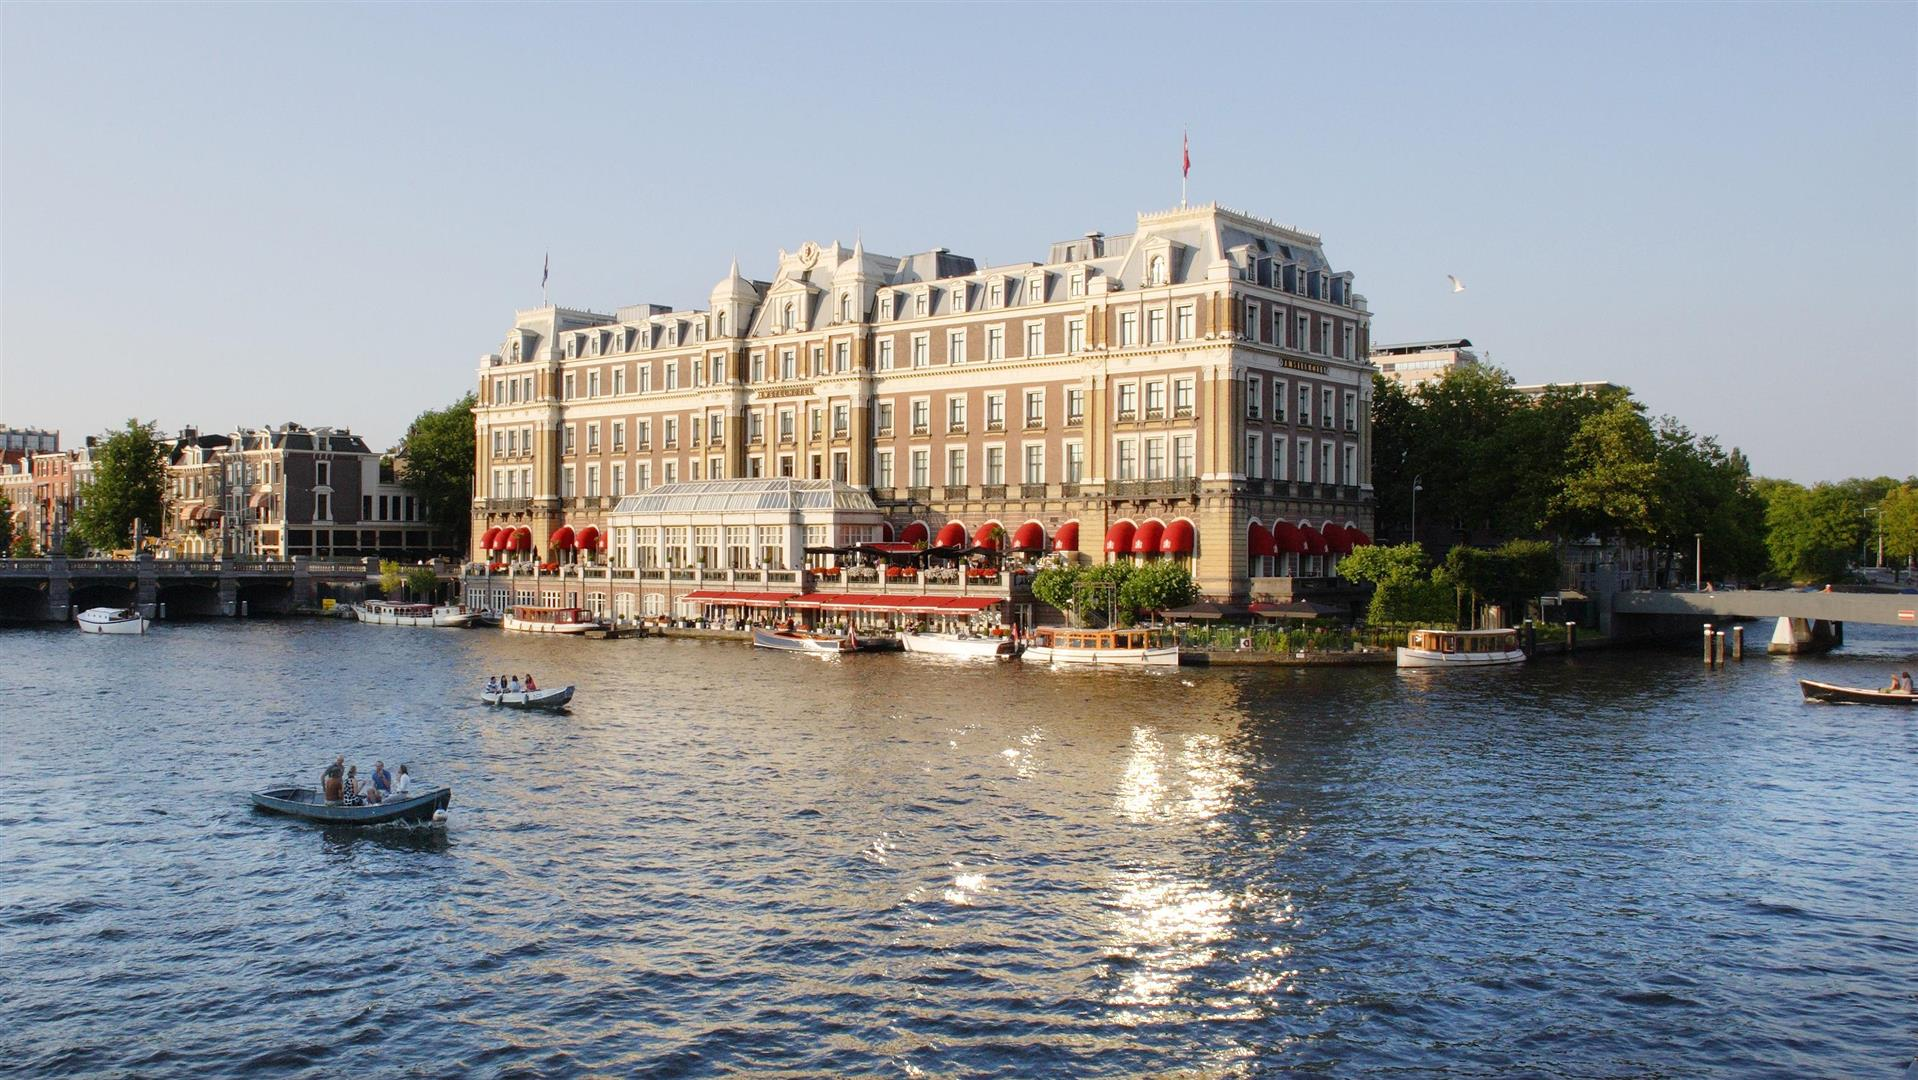 Meetings and events at InterContinental Amstel Amsterdam